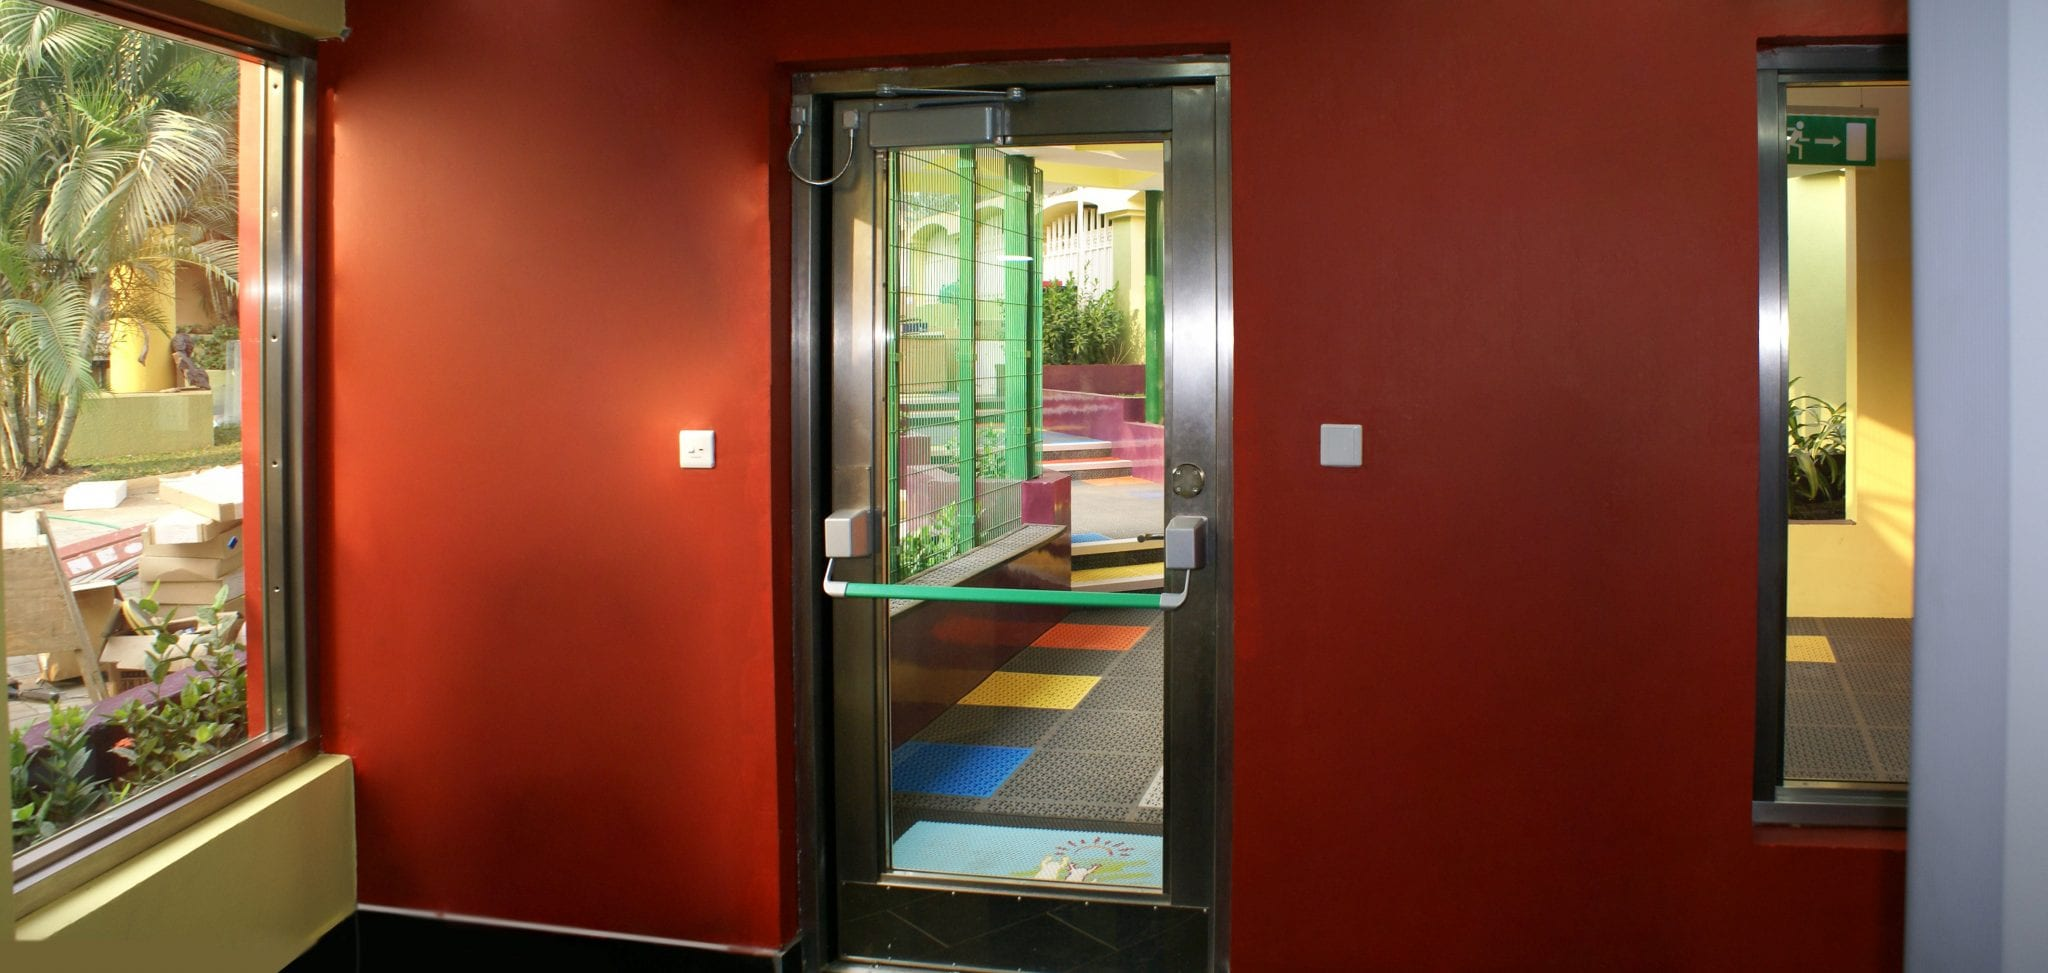 Fully glazed stainless-steel Warrior Fire Escape door with a green push to exit bar for easy visibility. Inside a school in Nigeria.